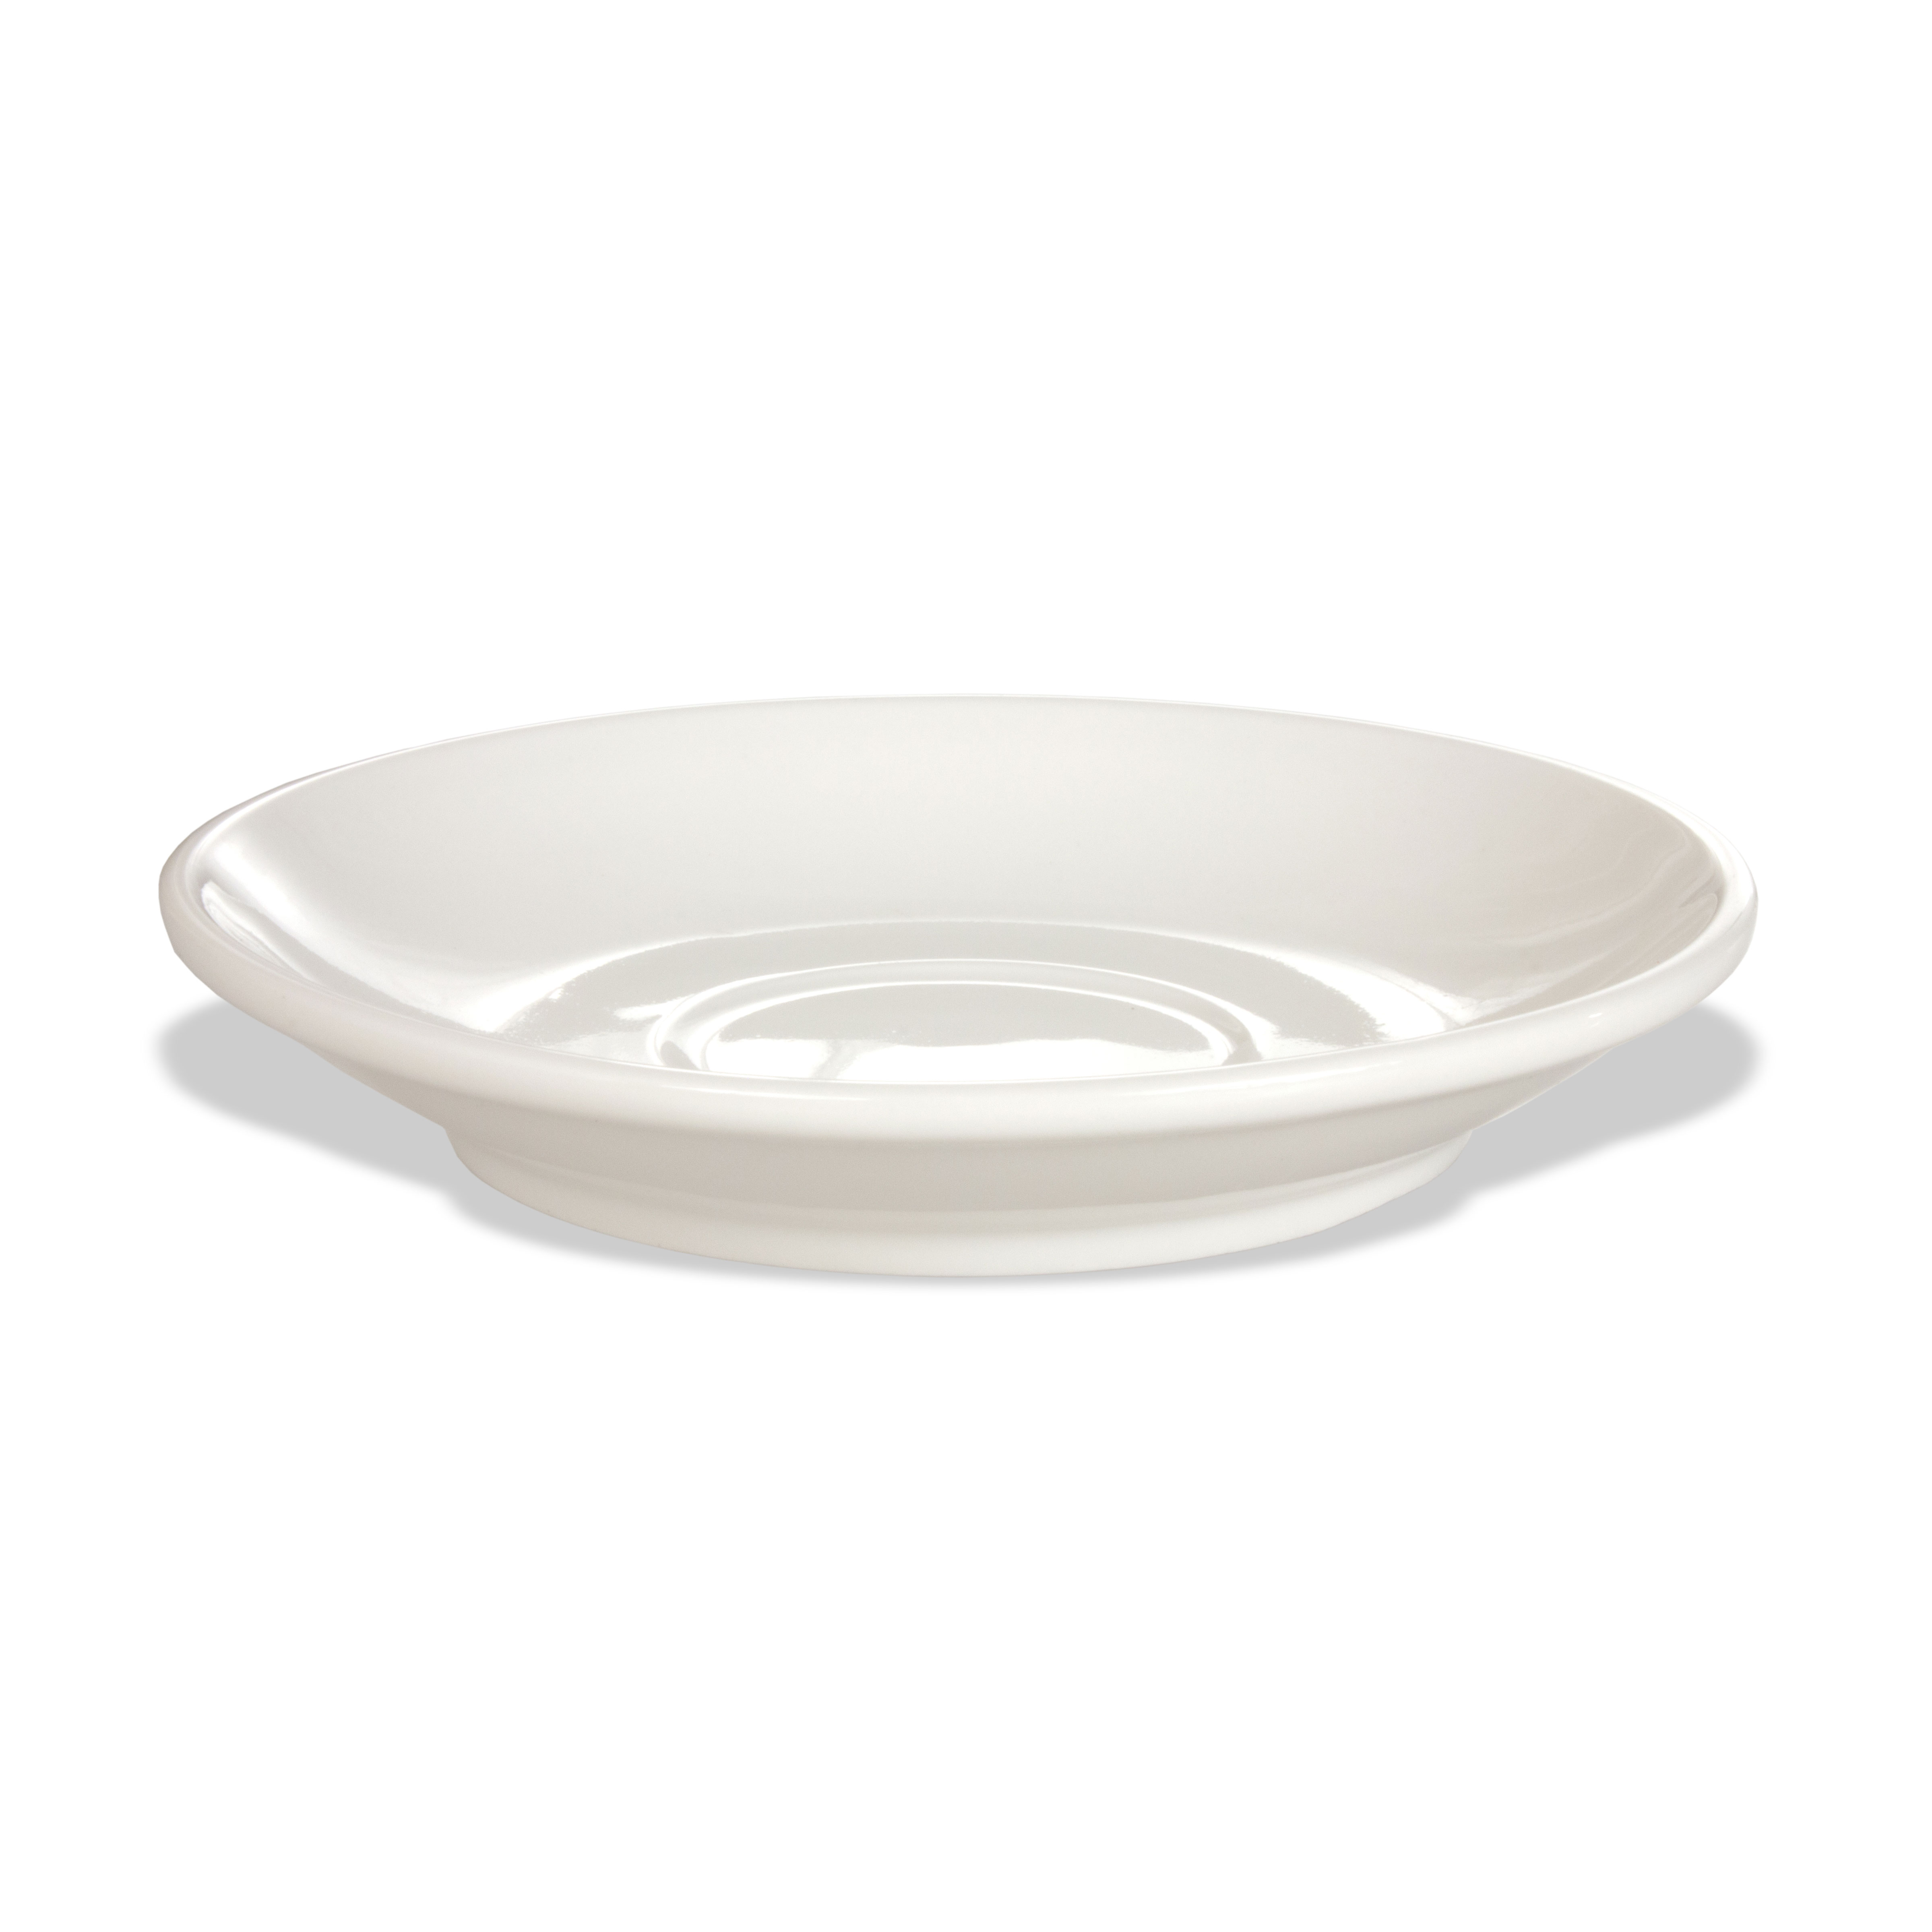 Crestware SEM22 saucer, china